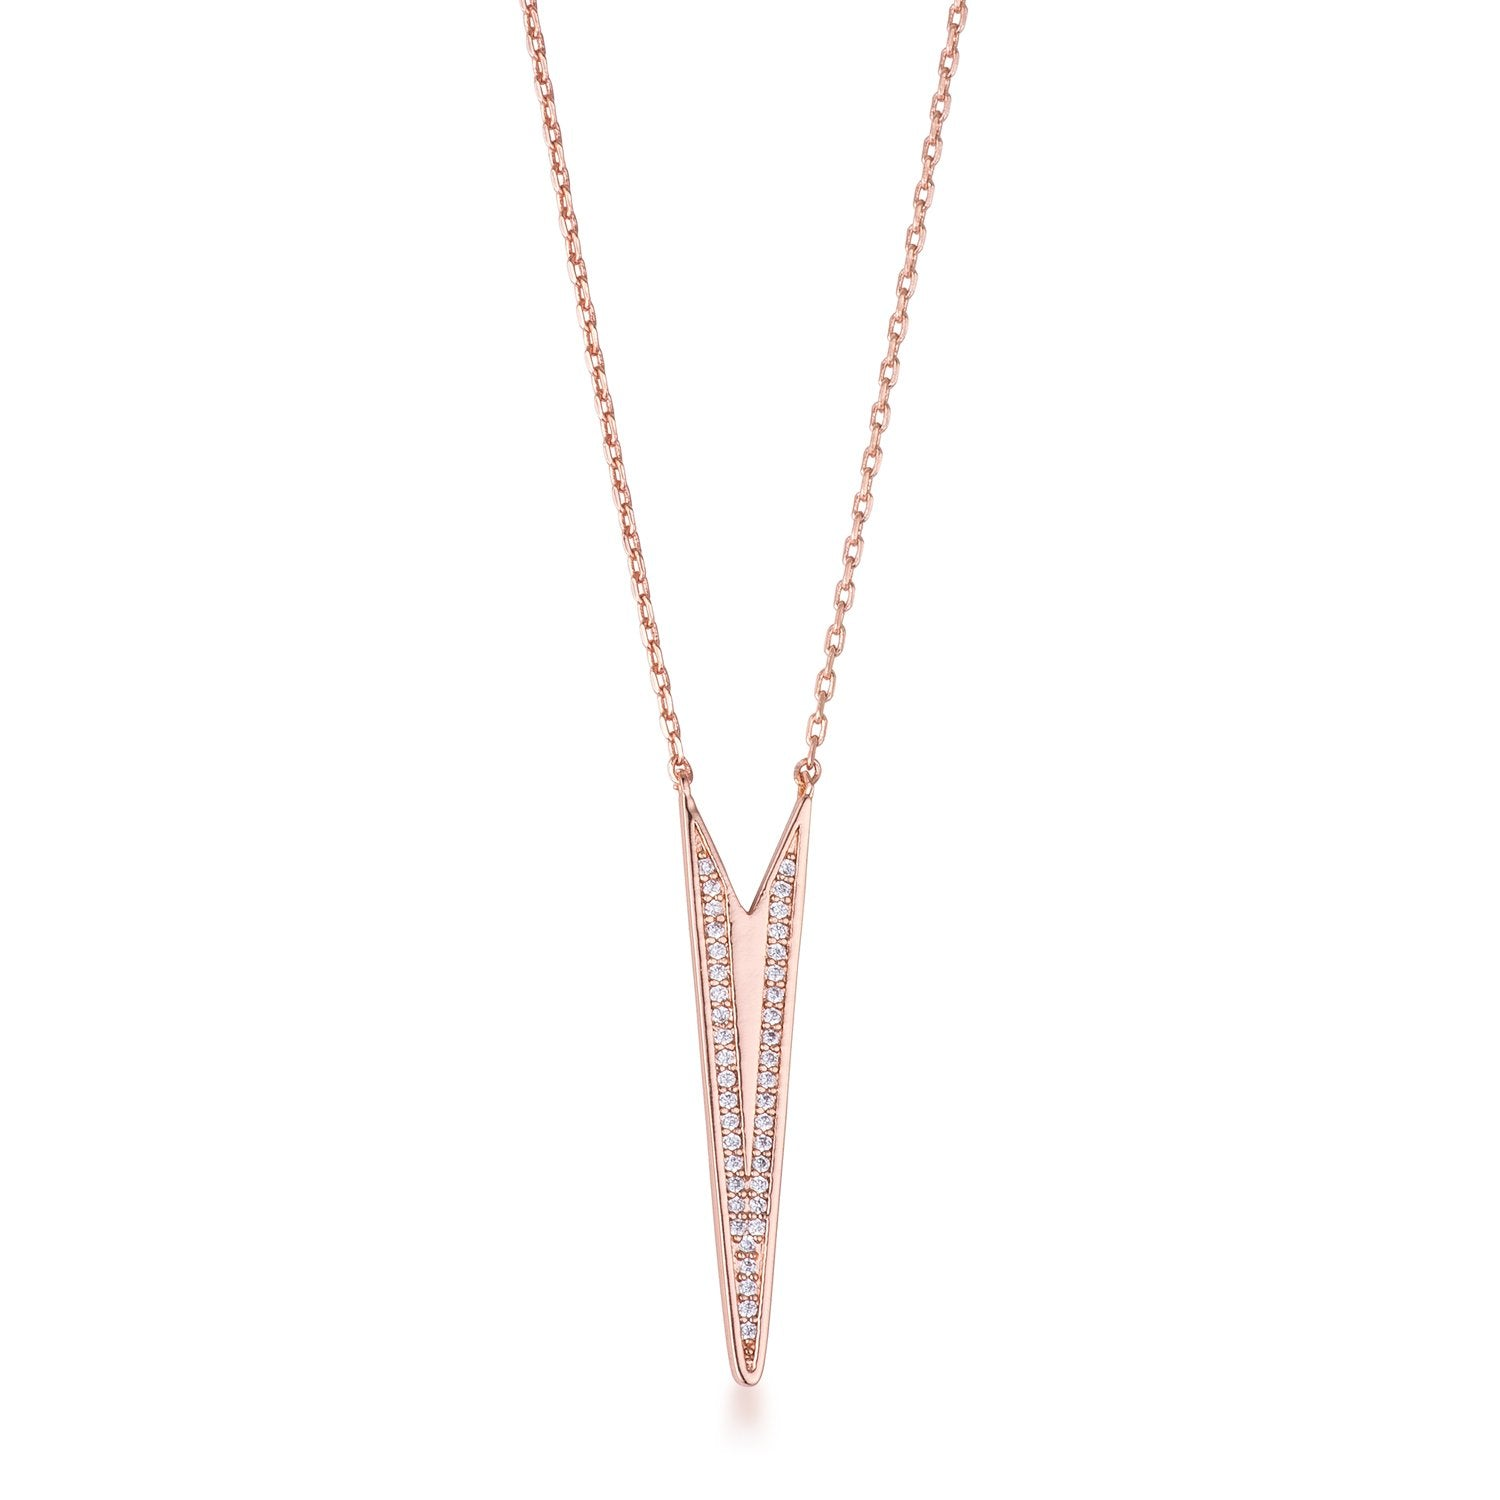 Rose Gold Plated CZ Embedded Elongated Arrow Necklace .2Ct - N01340A-C01